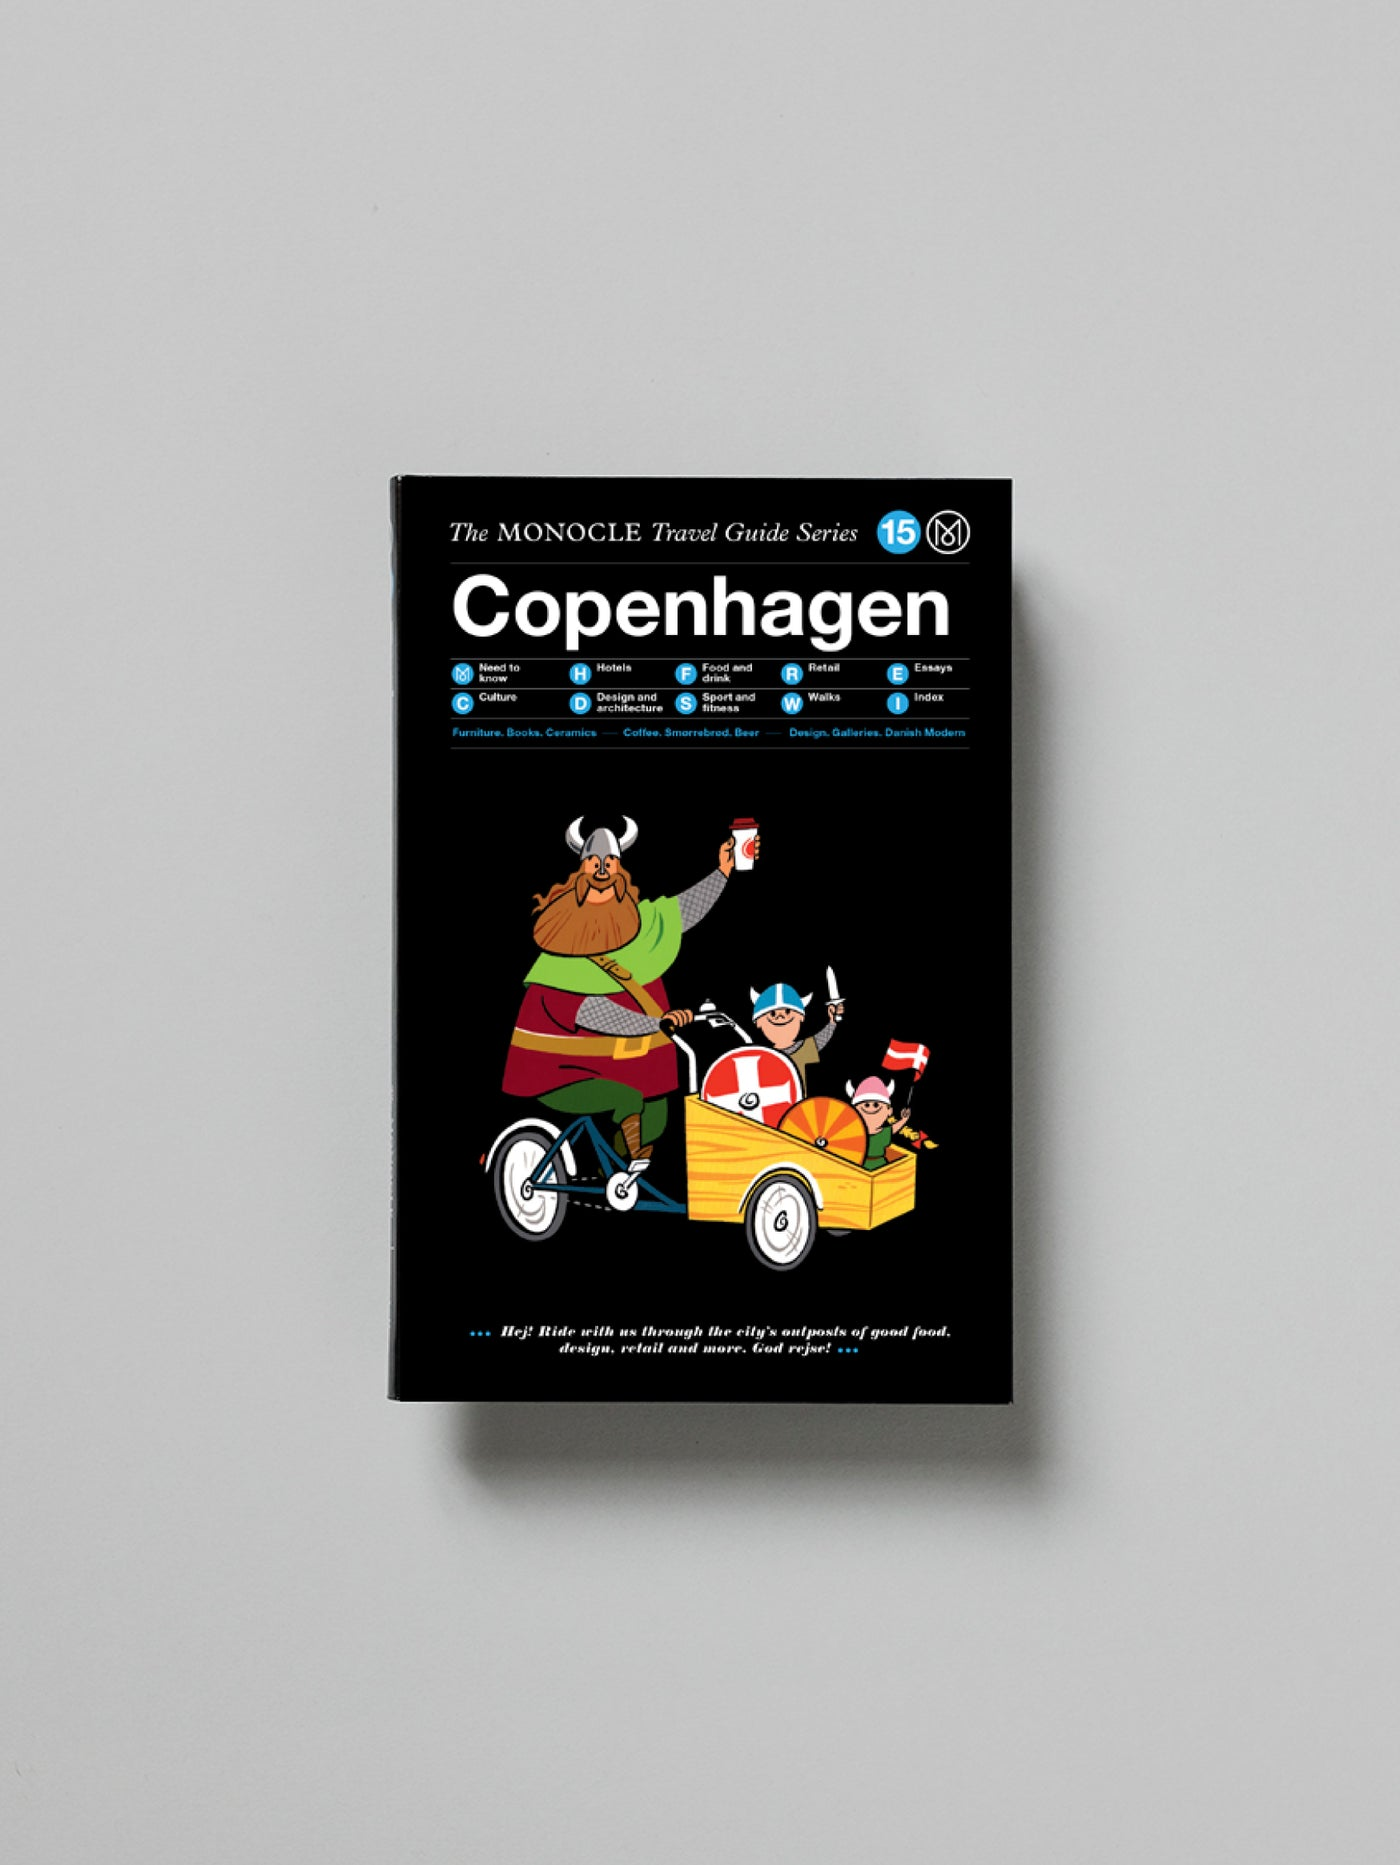 Copenhagen: The Monocle Travel Guide Series